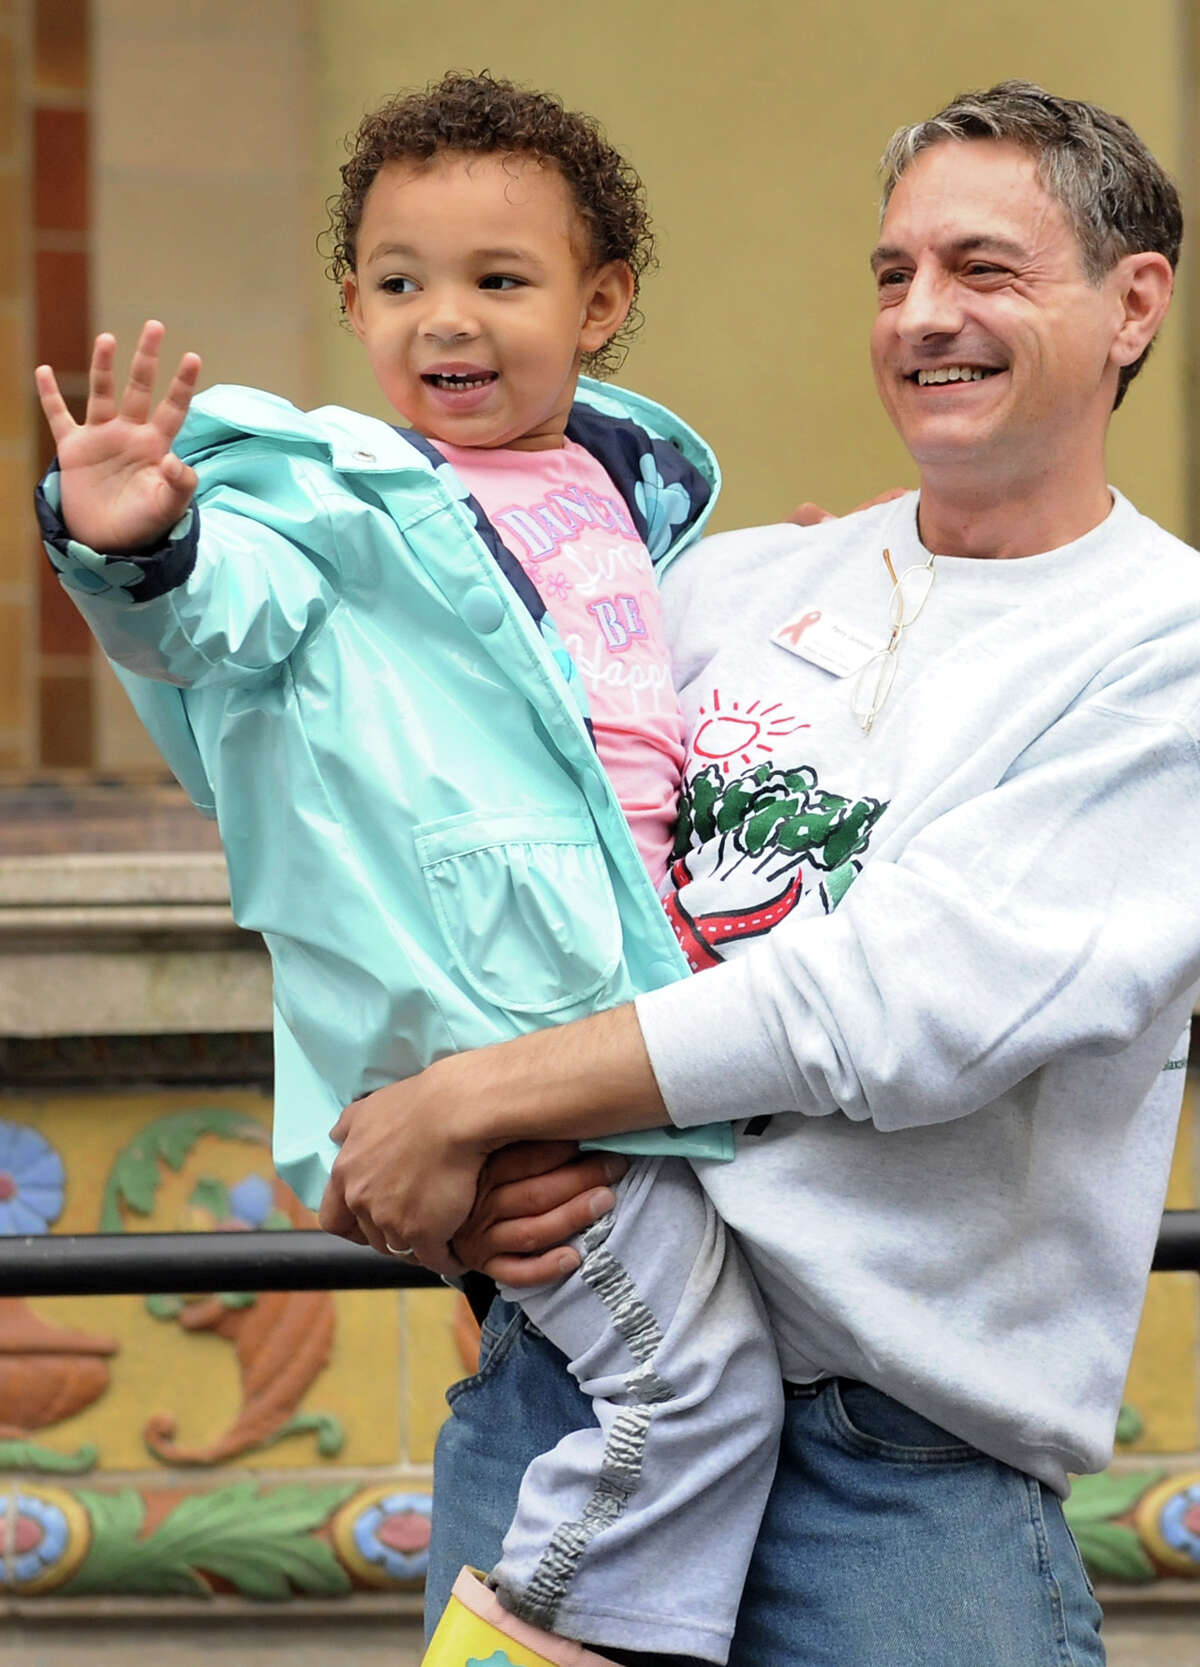 Perry Junjulas, executive director of the Damien Center, right, holds his granddaughter Angie Ward-Green, 4, as she waves from the stage during the annual AIDSWalk on Saturday, Sept. 29, 2012, at Washington Park in Albany, N.Y. Junjulas has been living with AIDS since 1995. This event helps Capital Region organizations provide prevention, education and support services for those living with HIV and AIDS. (Cindy Schultz / Times Union)